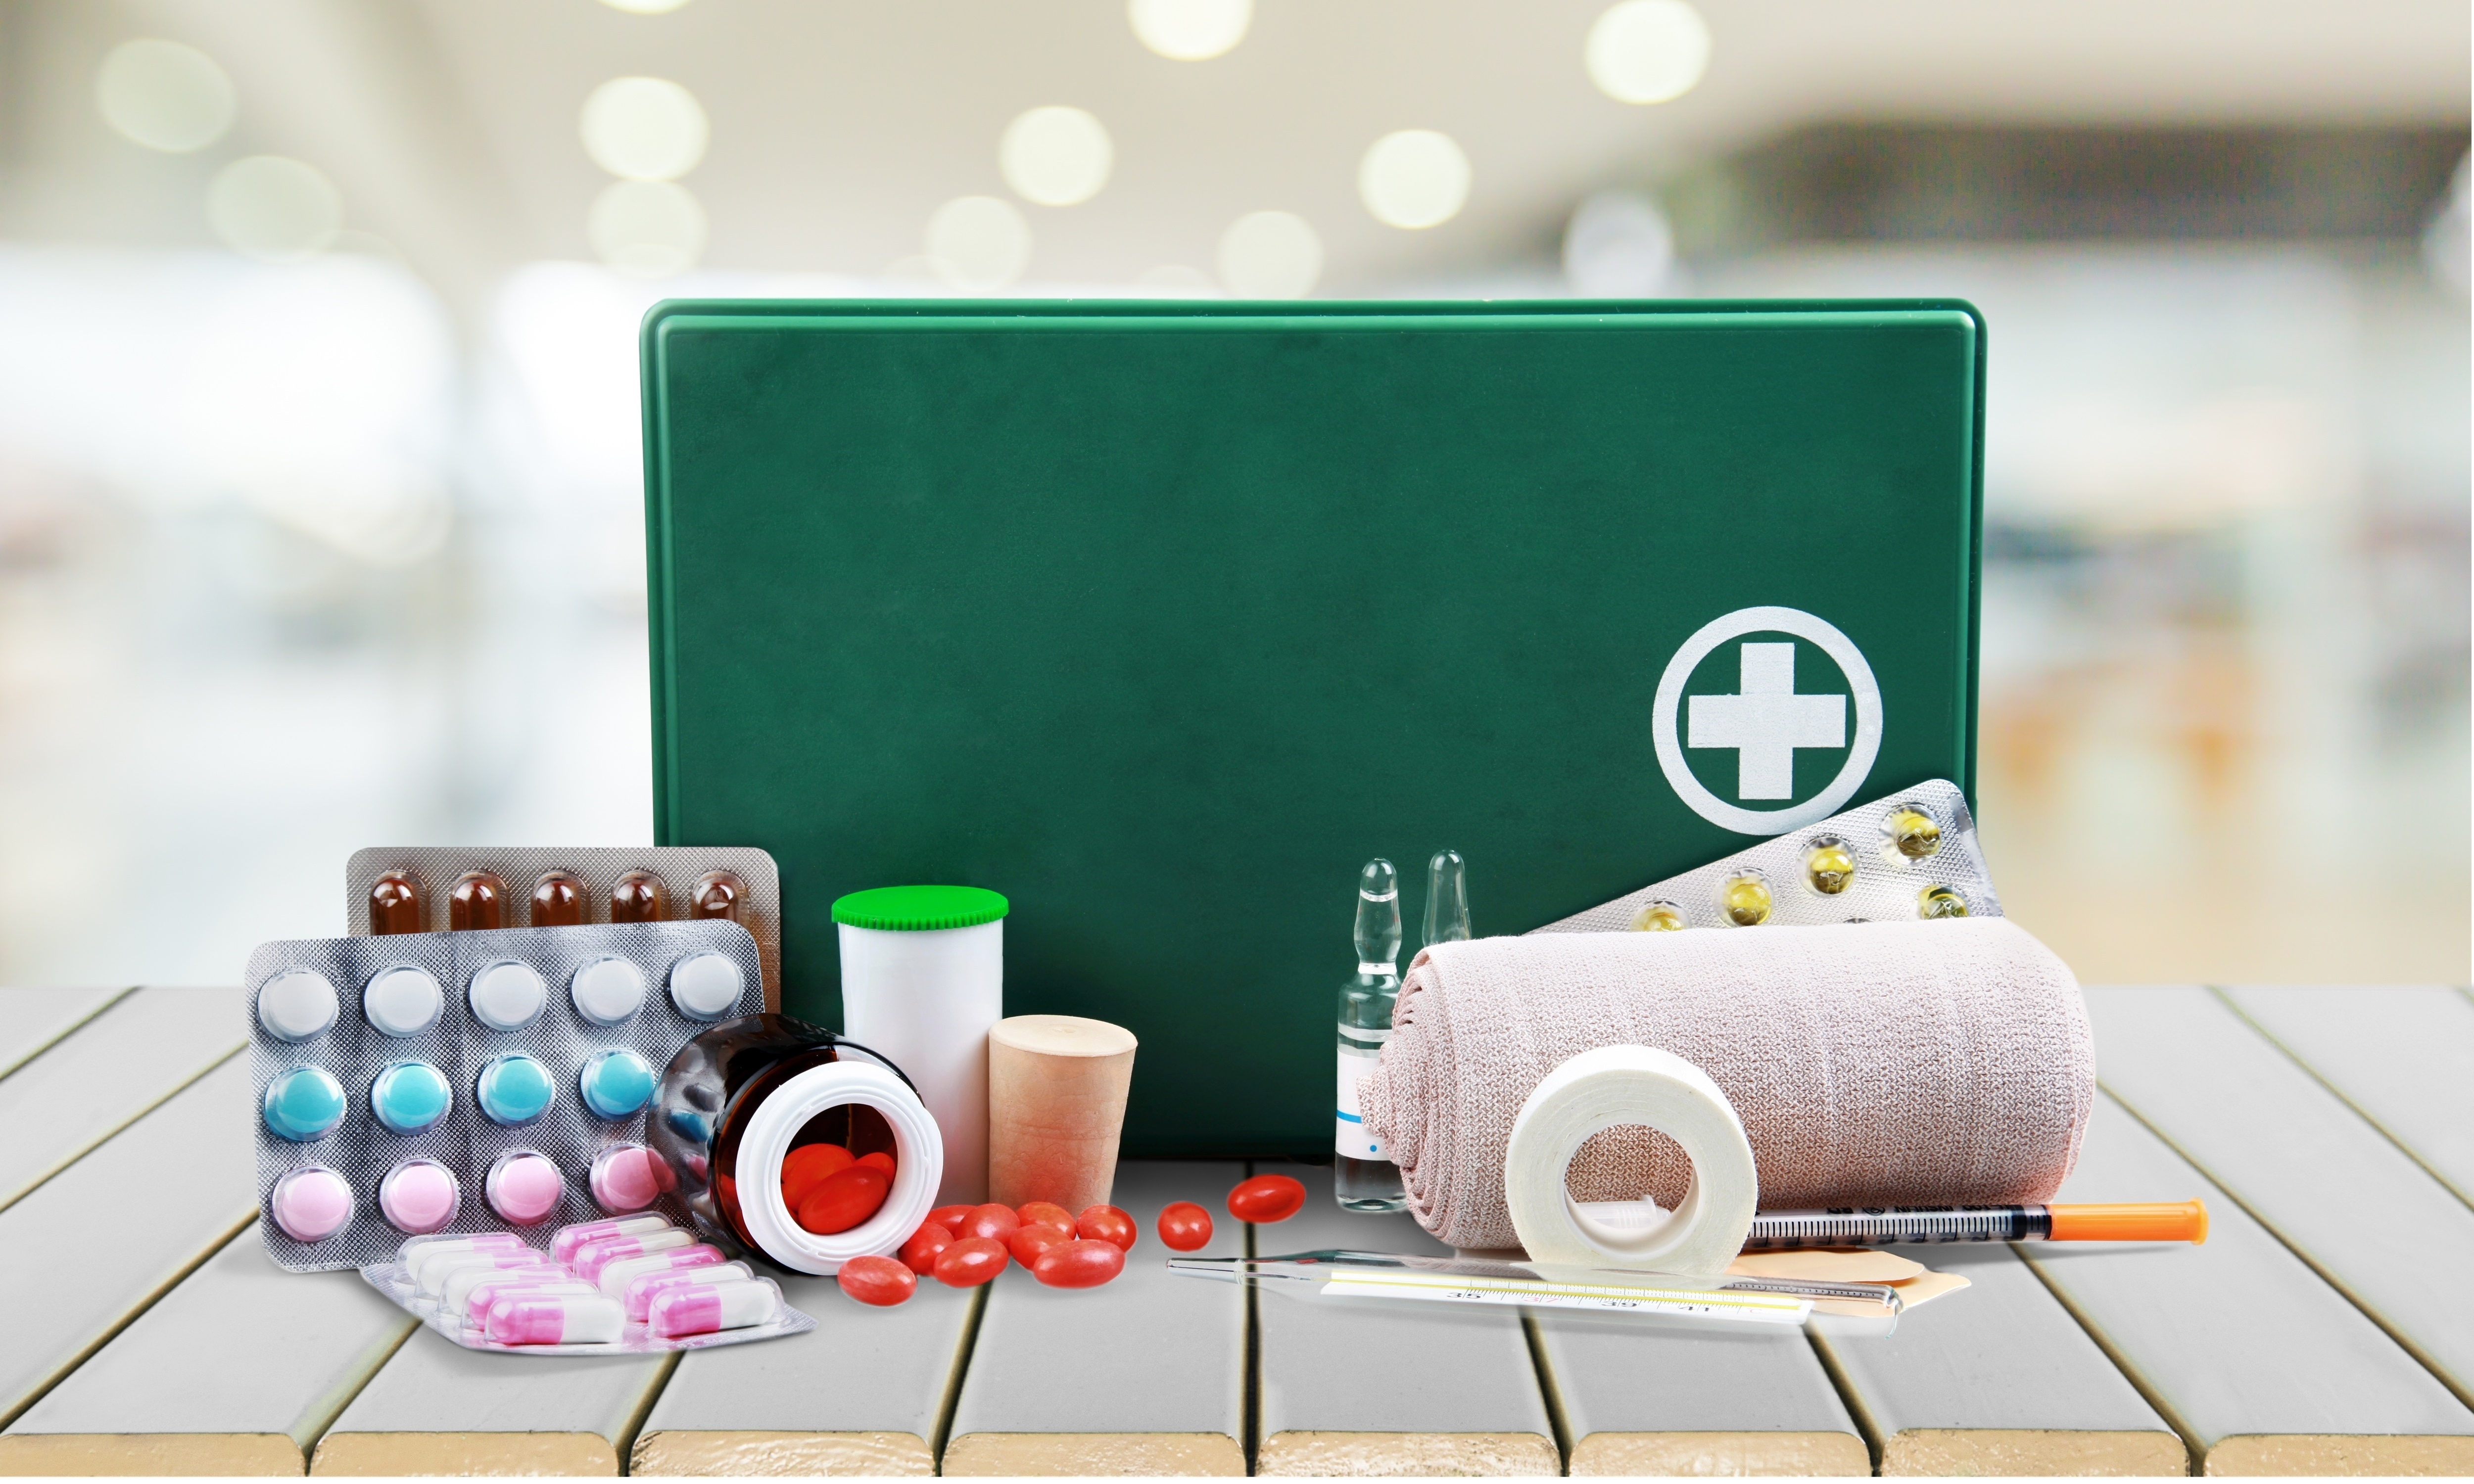 Keeping Your First Aid Kit Full Protects Employees